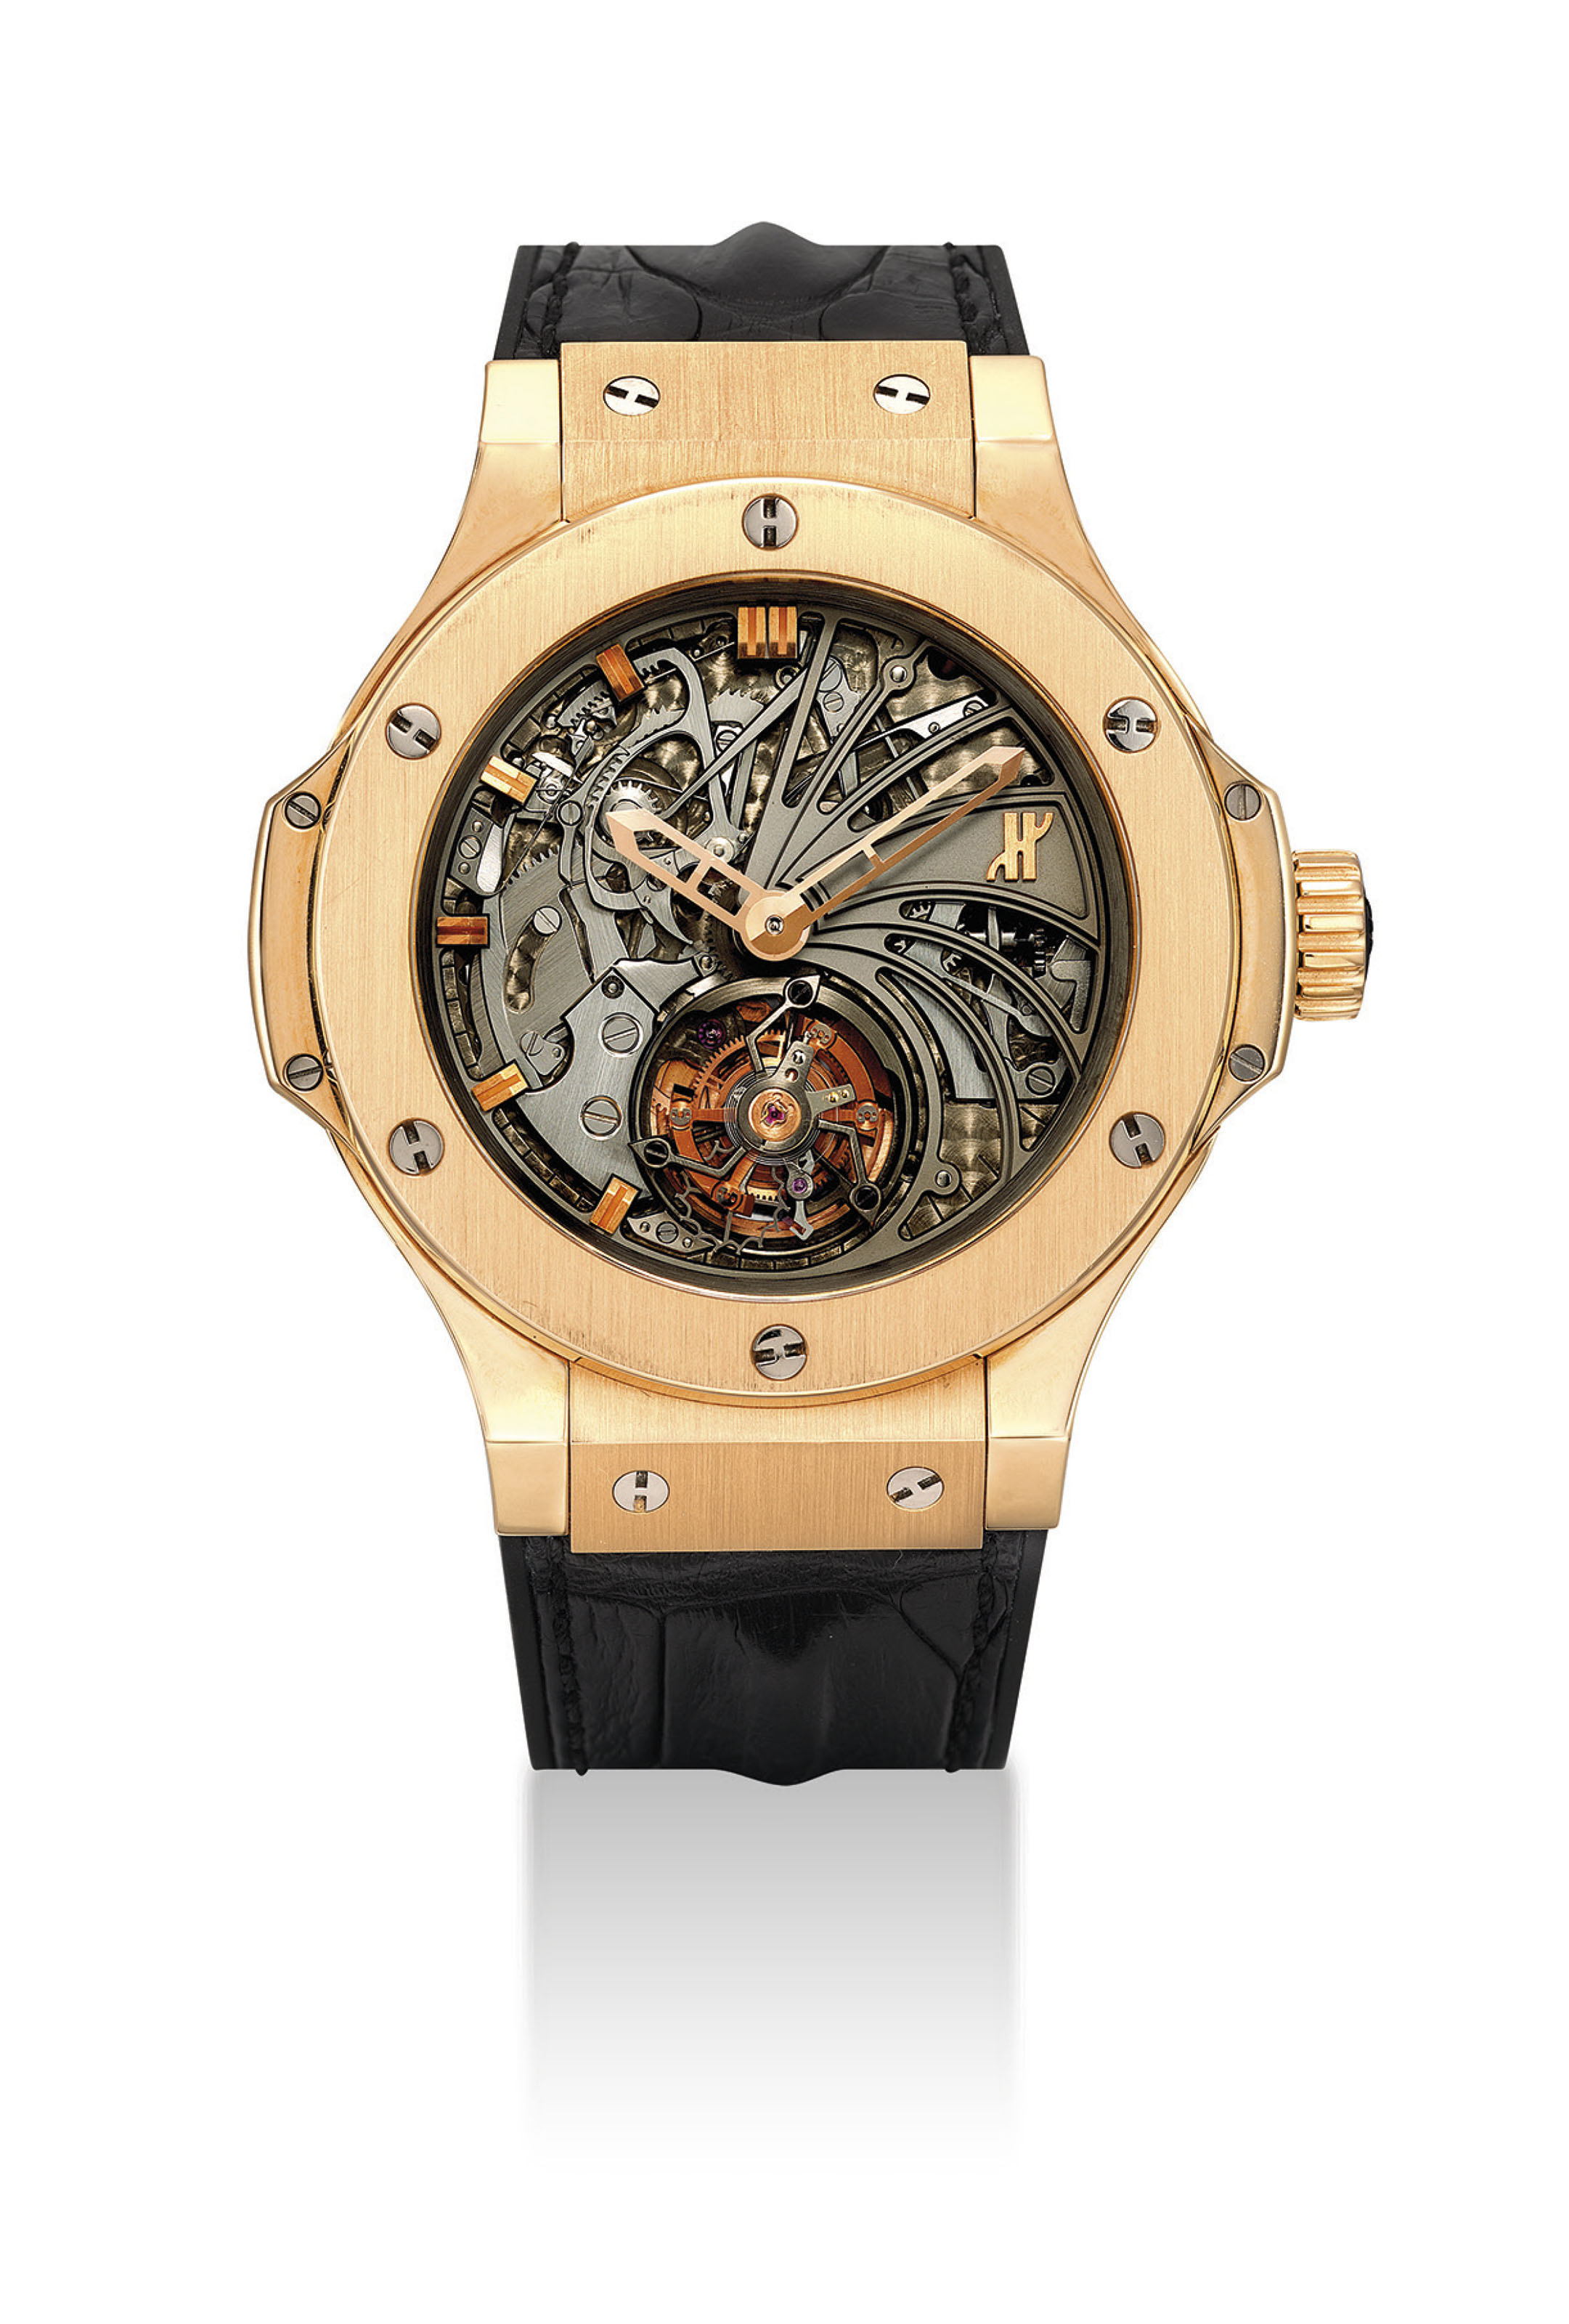 HUBLOT. A FINE AND EXTREMELY RARE 18K PINK GOLD LIMITED EDITION SEMI-SKELETONISED MINUTE REPEATING TOURBILLON WRISTWATCH